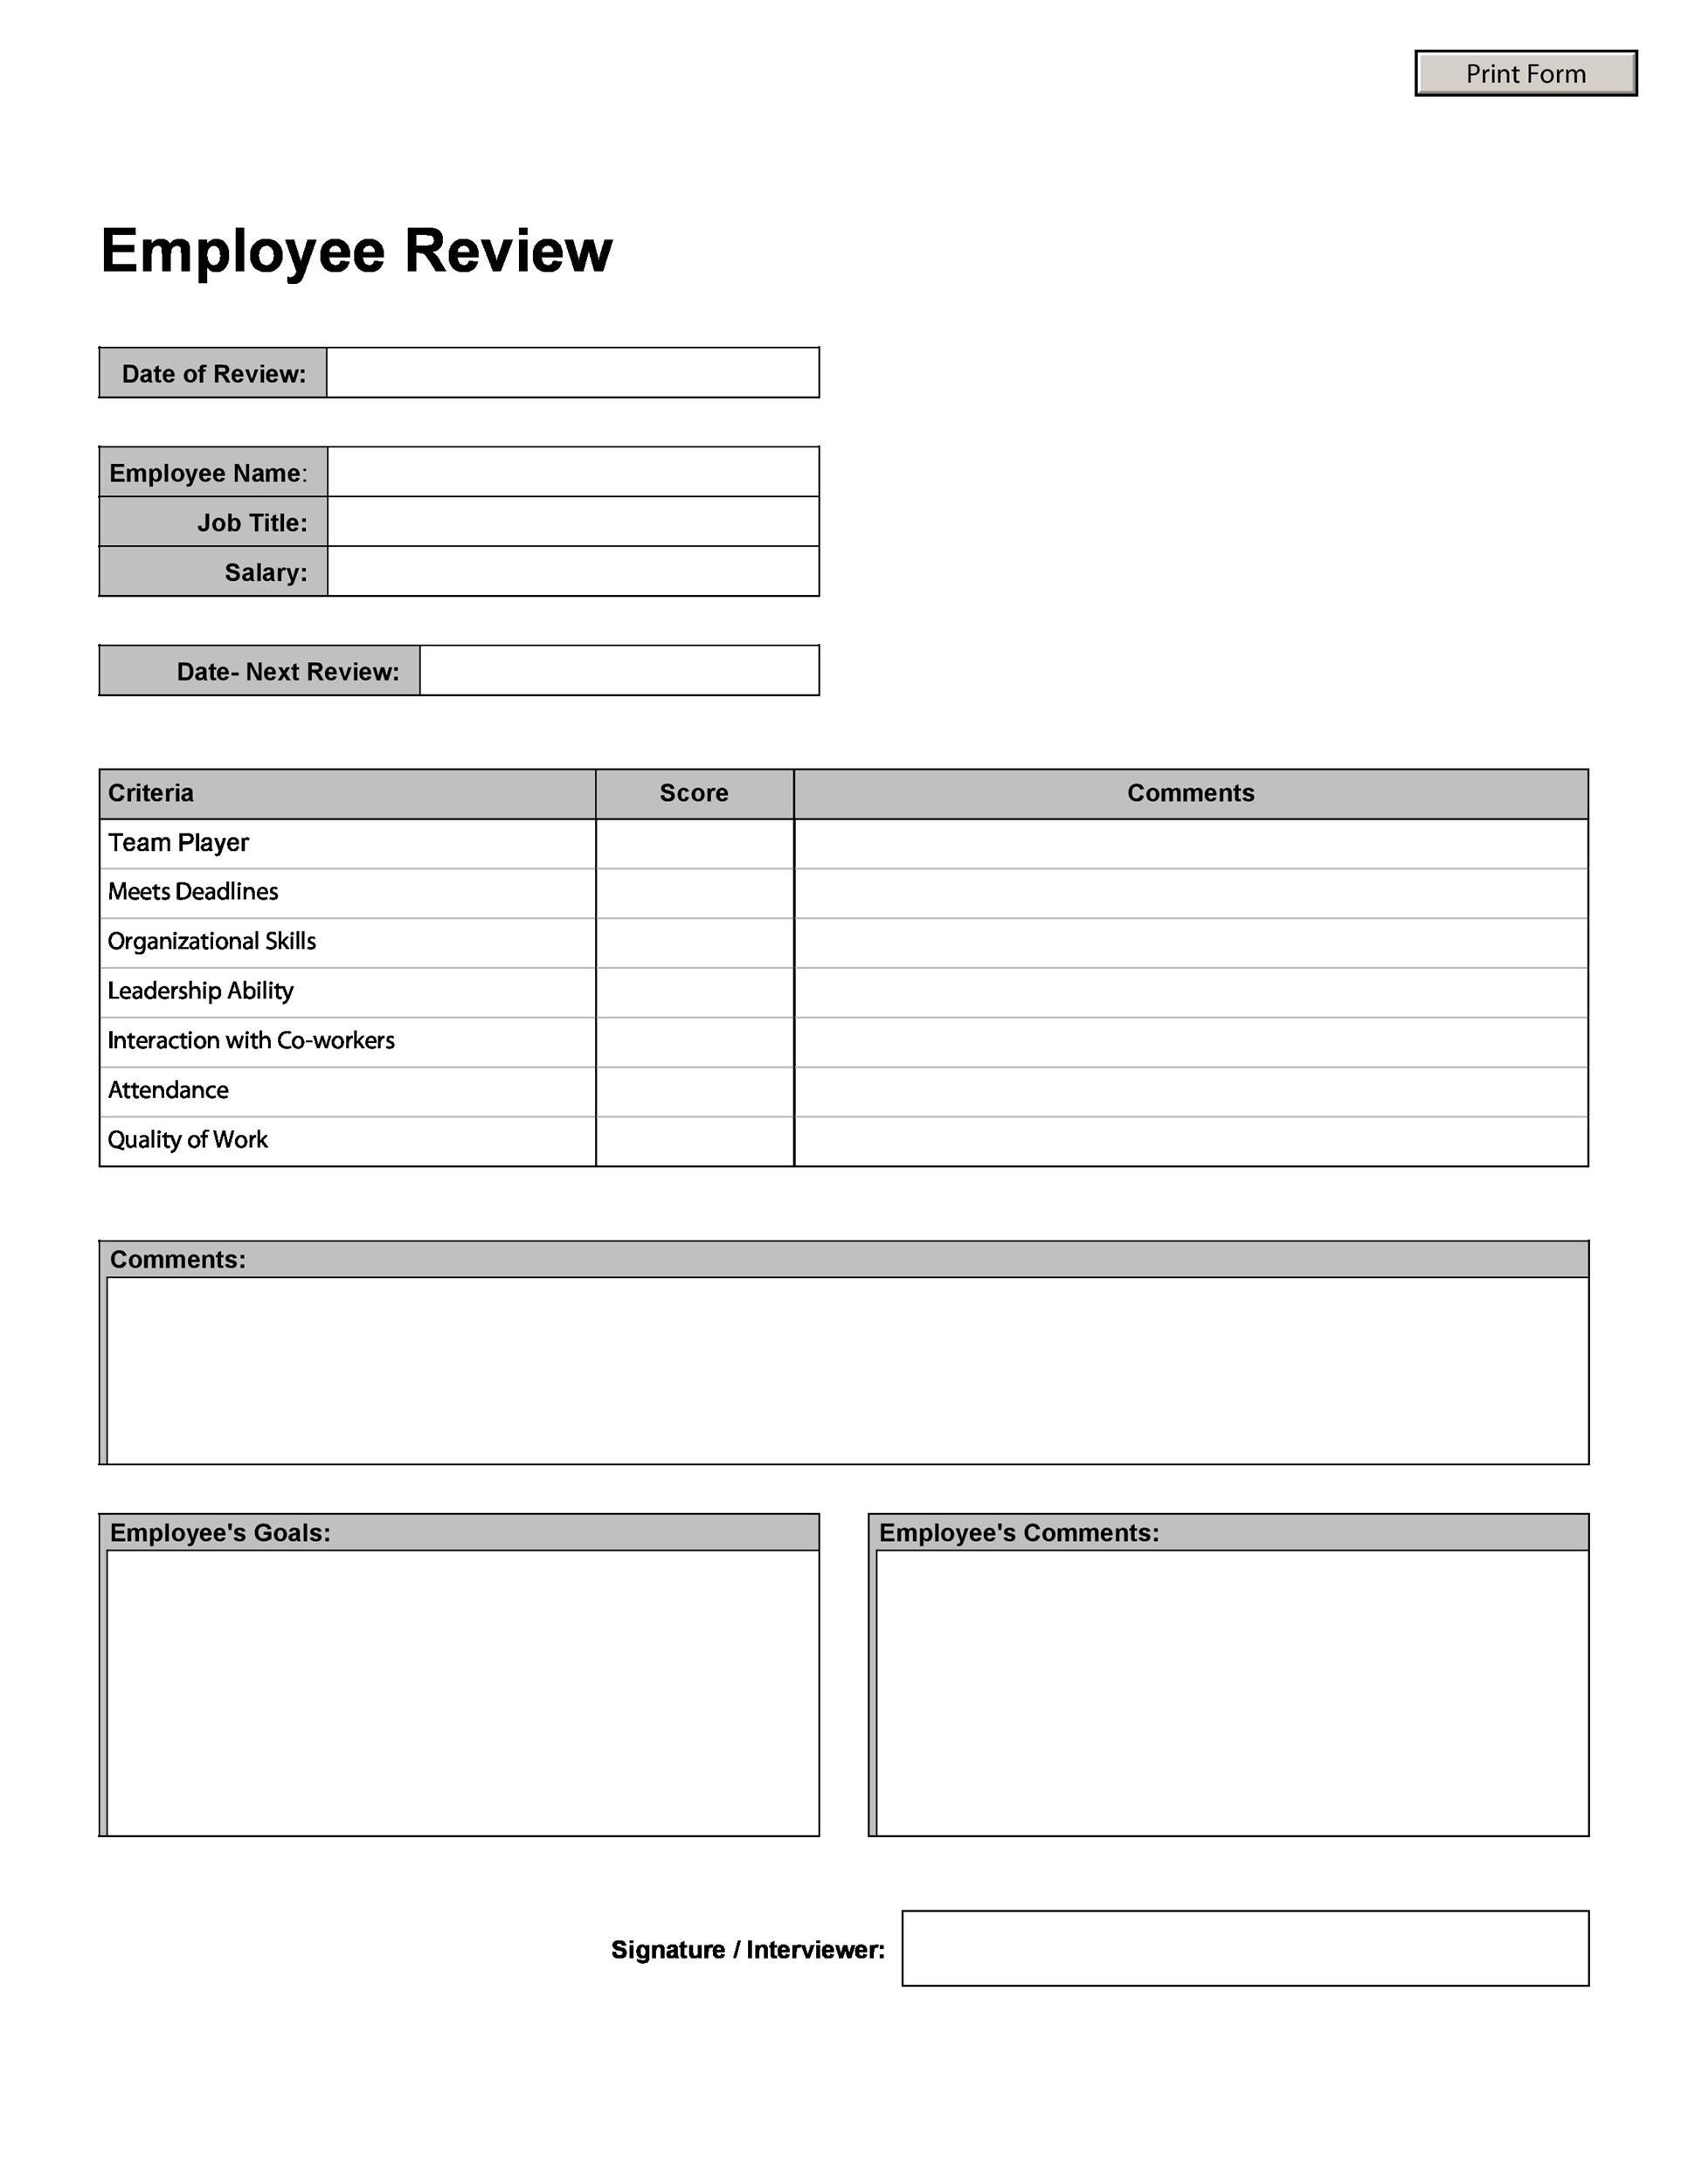 performance-review-examples-33 Performance Appraisal Communication Examples on performance management communication, gossip communication, leadership communication, performance management dashboard,